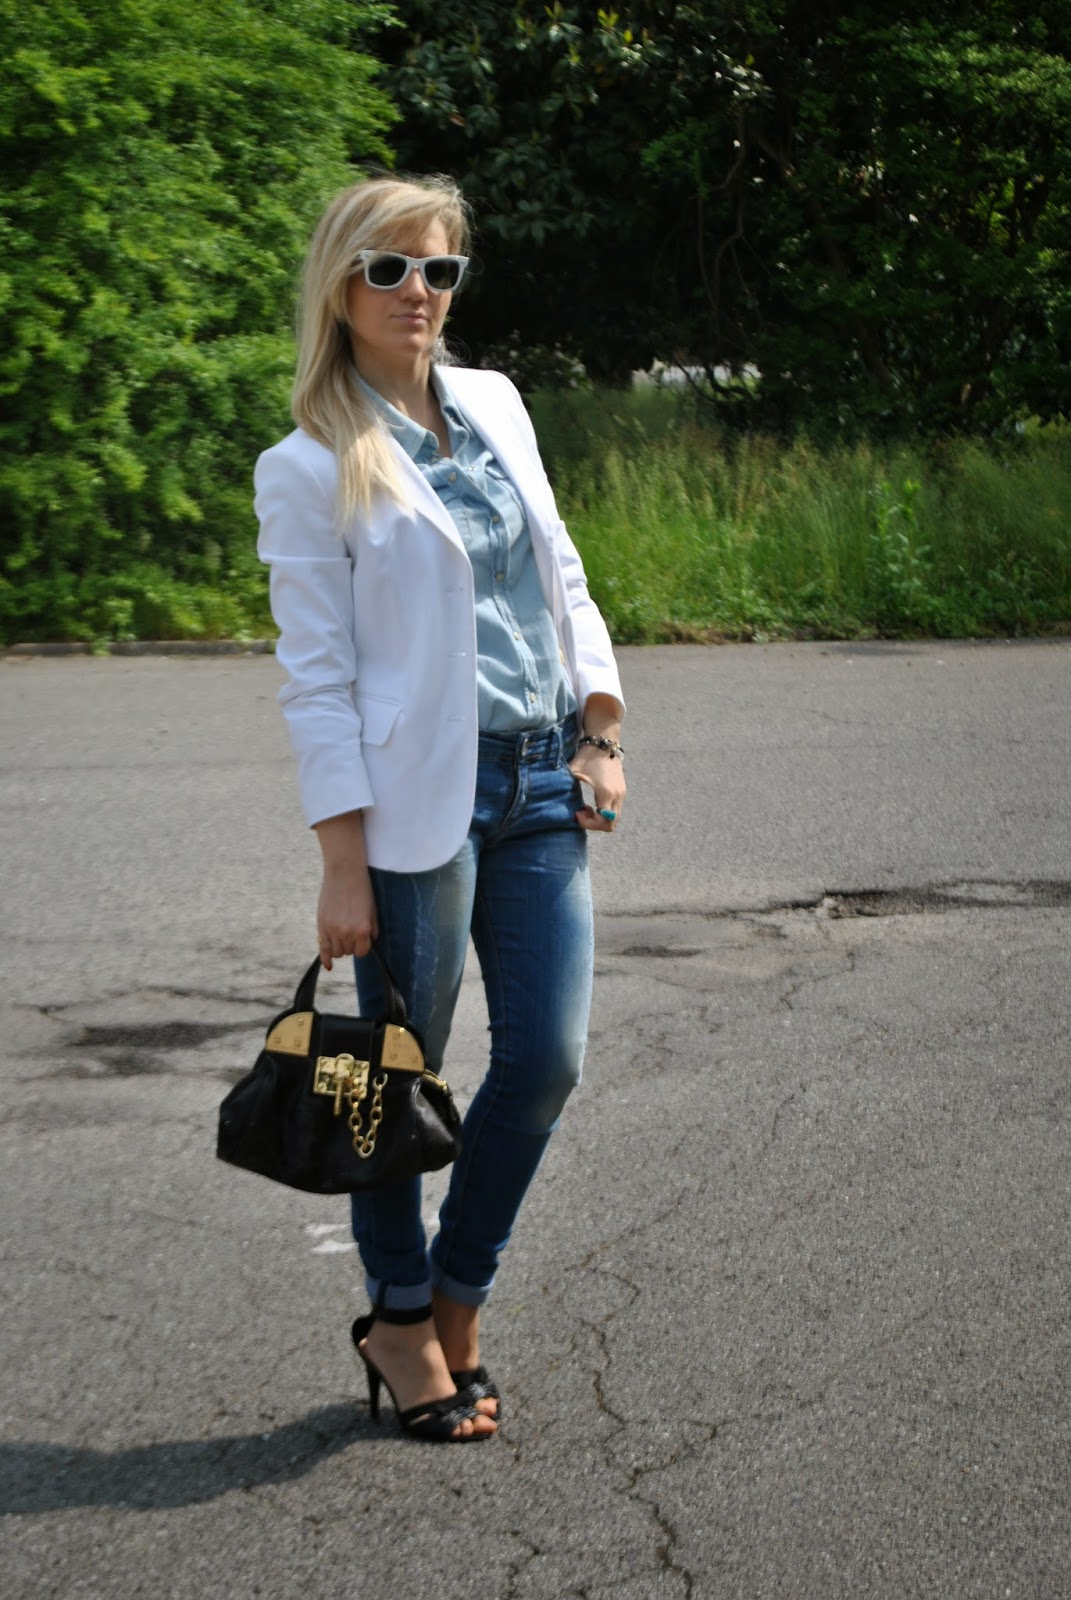 denim total look outfit ispirato olivia palermo mariafelicia magno fashion blogger colorblock by felym milano fashion blog italiani blogger italiane di moda blog di moda italiani  outfit jeans e tacchi abbinamenti jeans e tacchi outfit jeans skinny outfit blazer bianco come abbinare il blazer bianco abbinamenti blazer bianco mariafelicia magno fashion blogger colorblock by felym outfit primaverili donna outfit maggio 2015 outfit jeans skinny total look denim denim total look come abbinare la camicia jeans abbinamenti camicia jeans come abbinare la camicia in denim abbinamenti camicia denim fashion blog italiani milano blog di moda fashion bloggers italy spring outfit jeans and heels white blazer skinny jeans olivia palermo outfit ispirato olivia palermo denim total look girls blonde hair blonde girls blondie fornarina luca barra braccialini